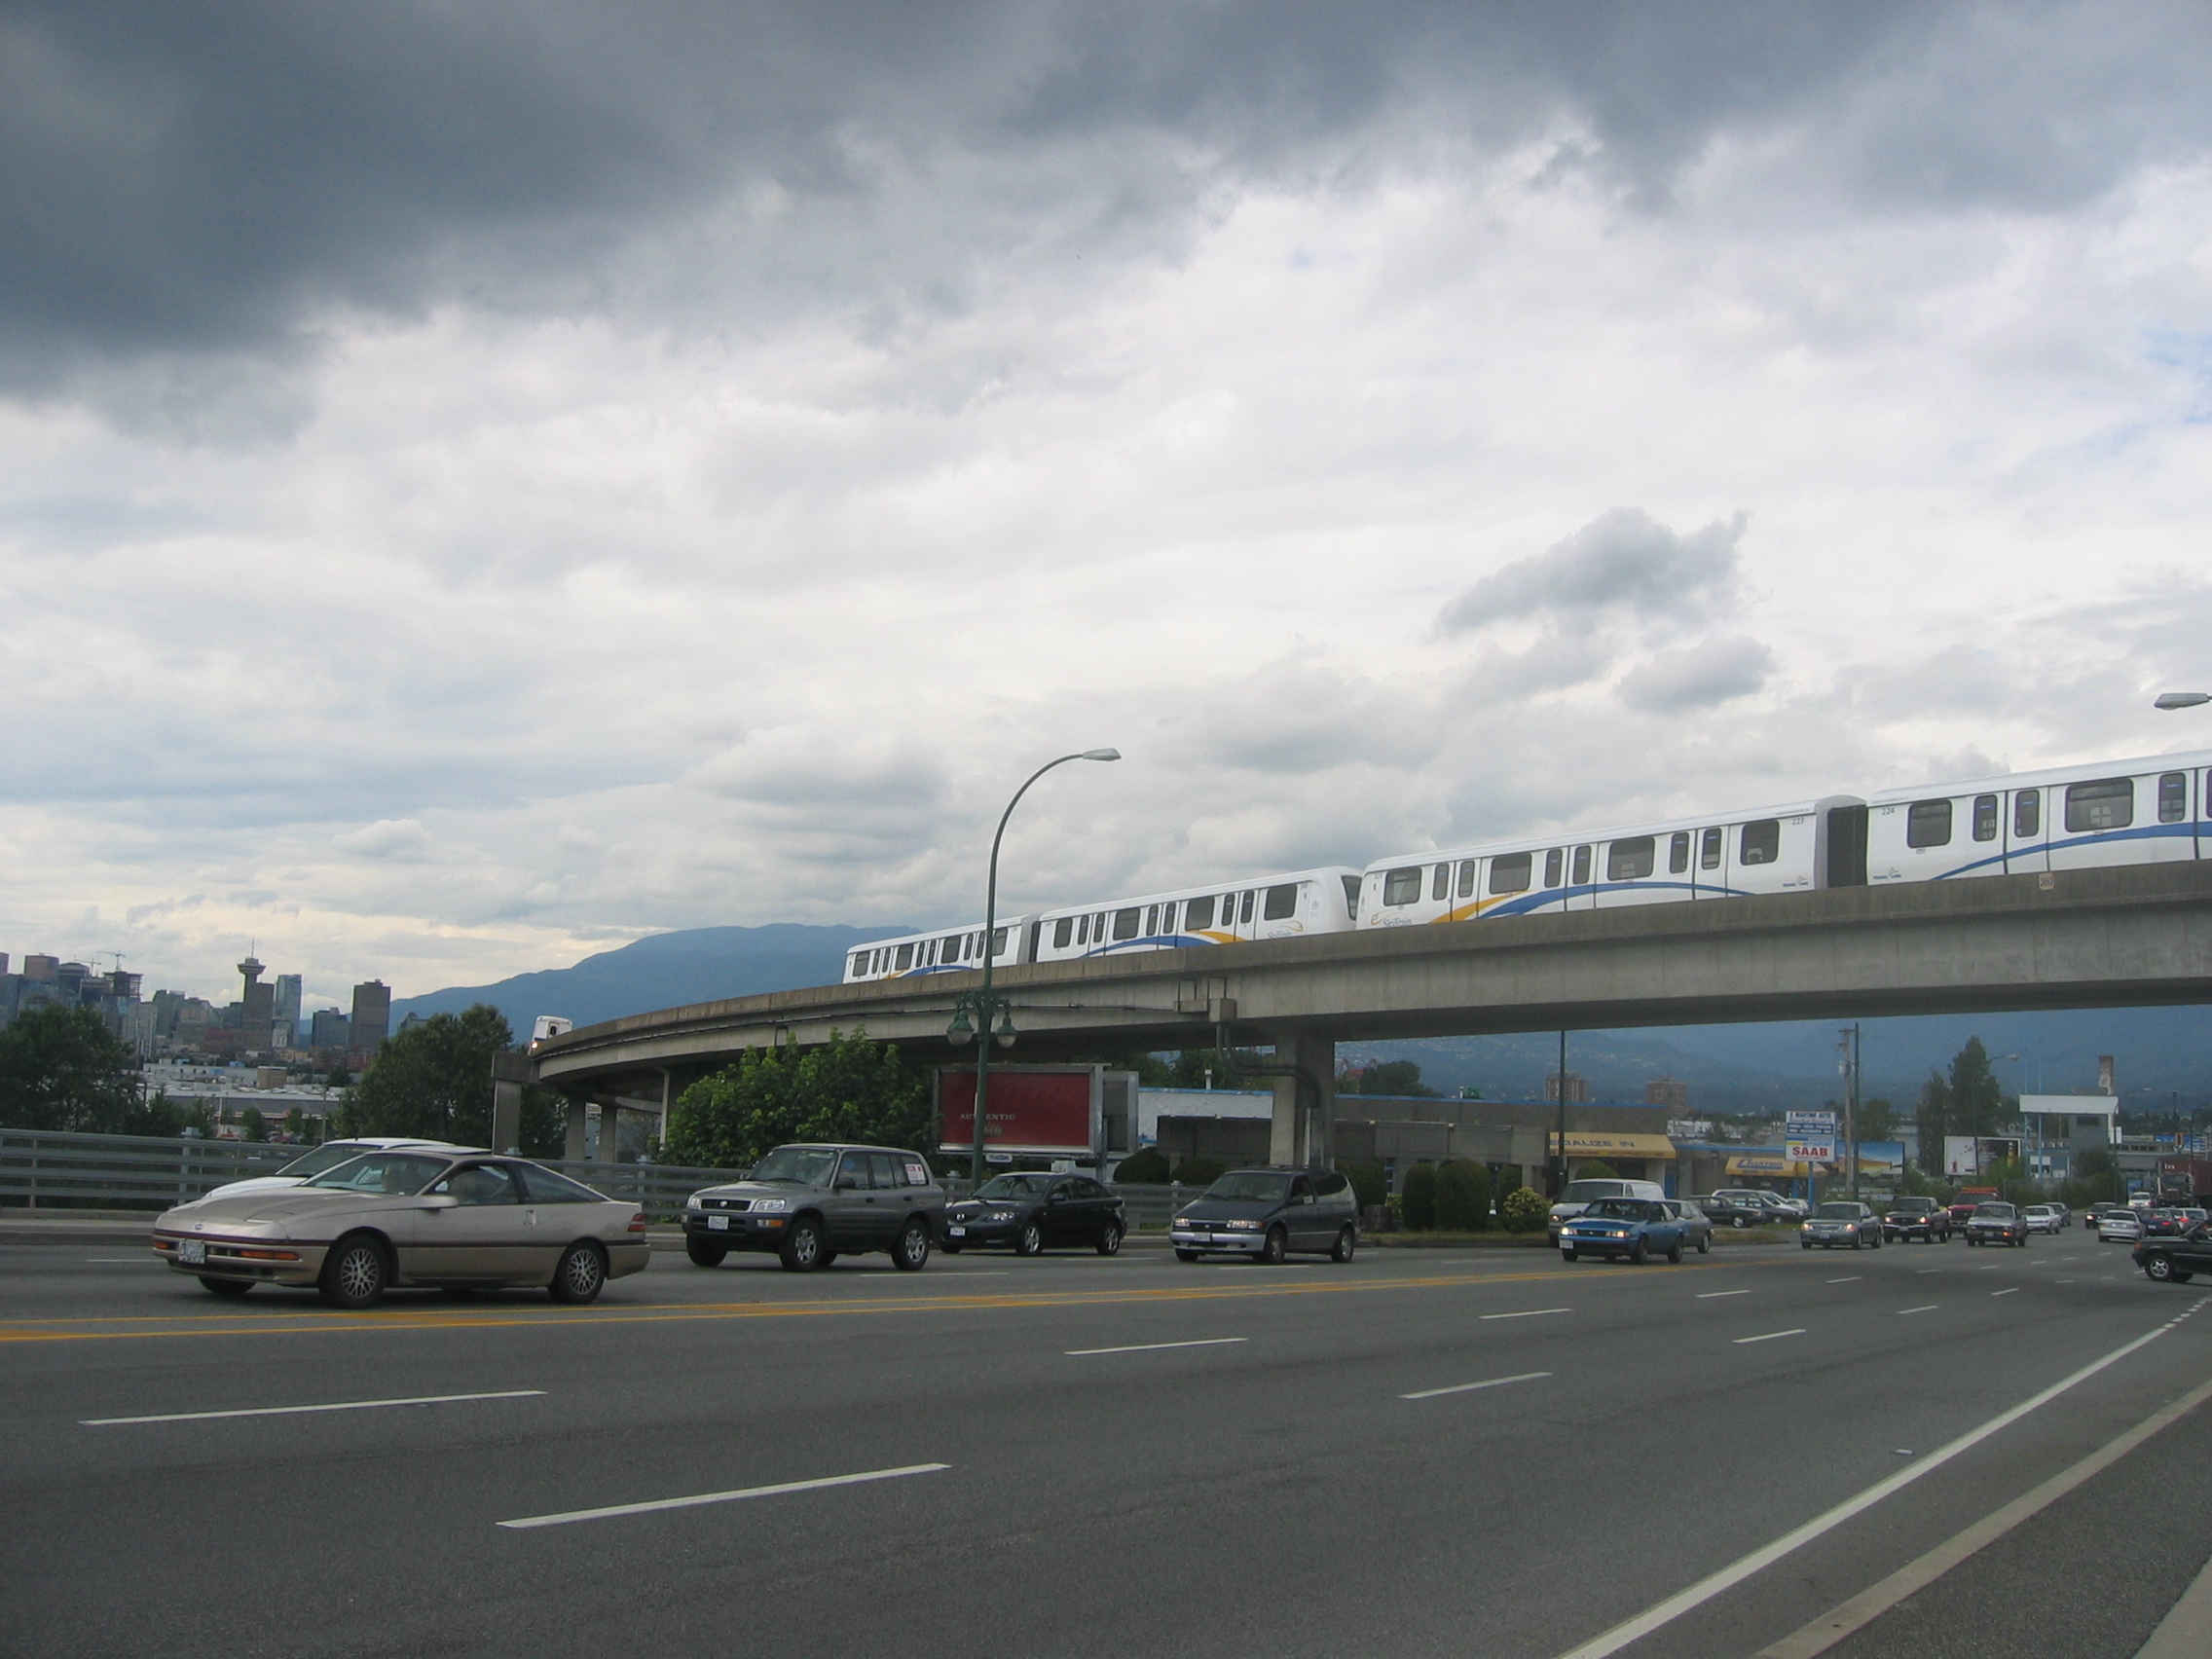 North vancouver translink-2694